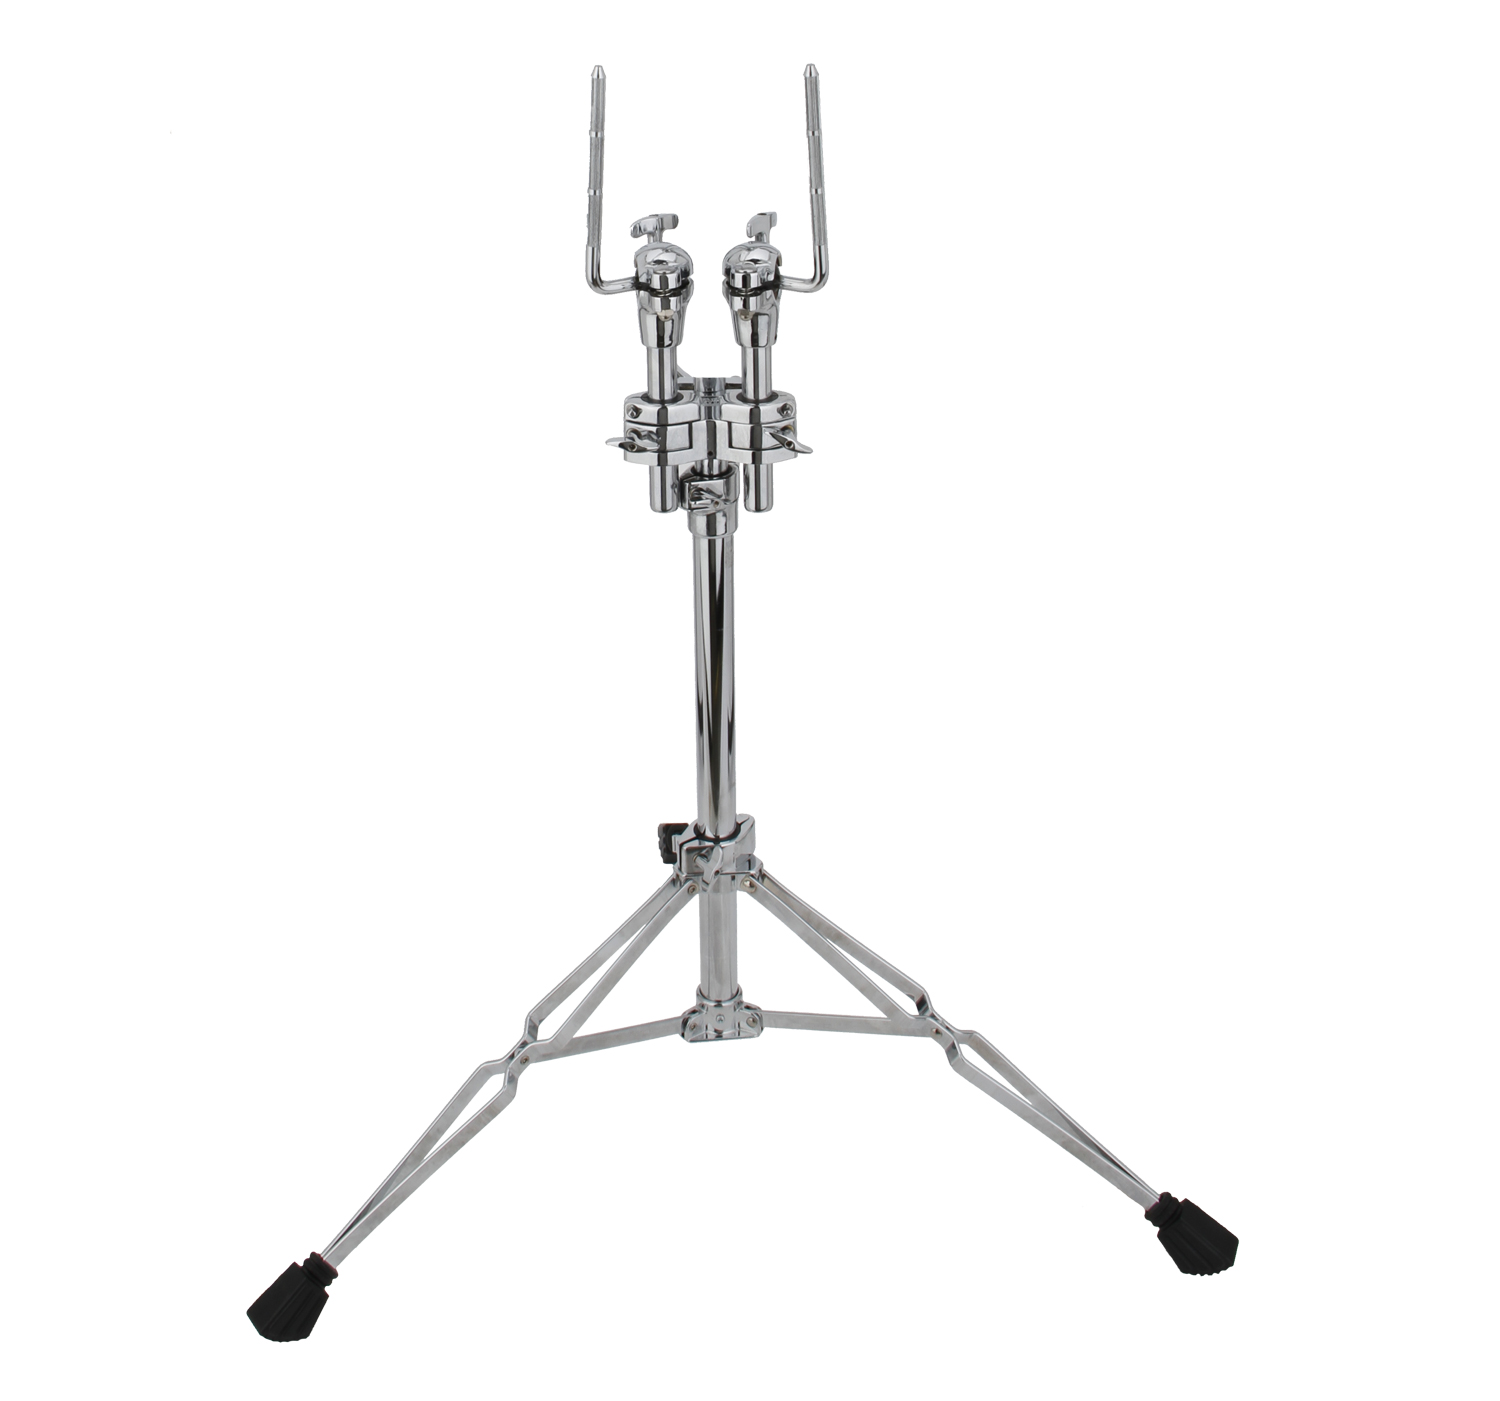 Taye Drums 6000 Series Hardware: Cymbal Stands, HiHat Stands, Snare